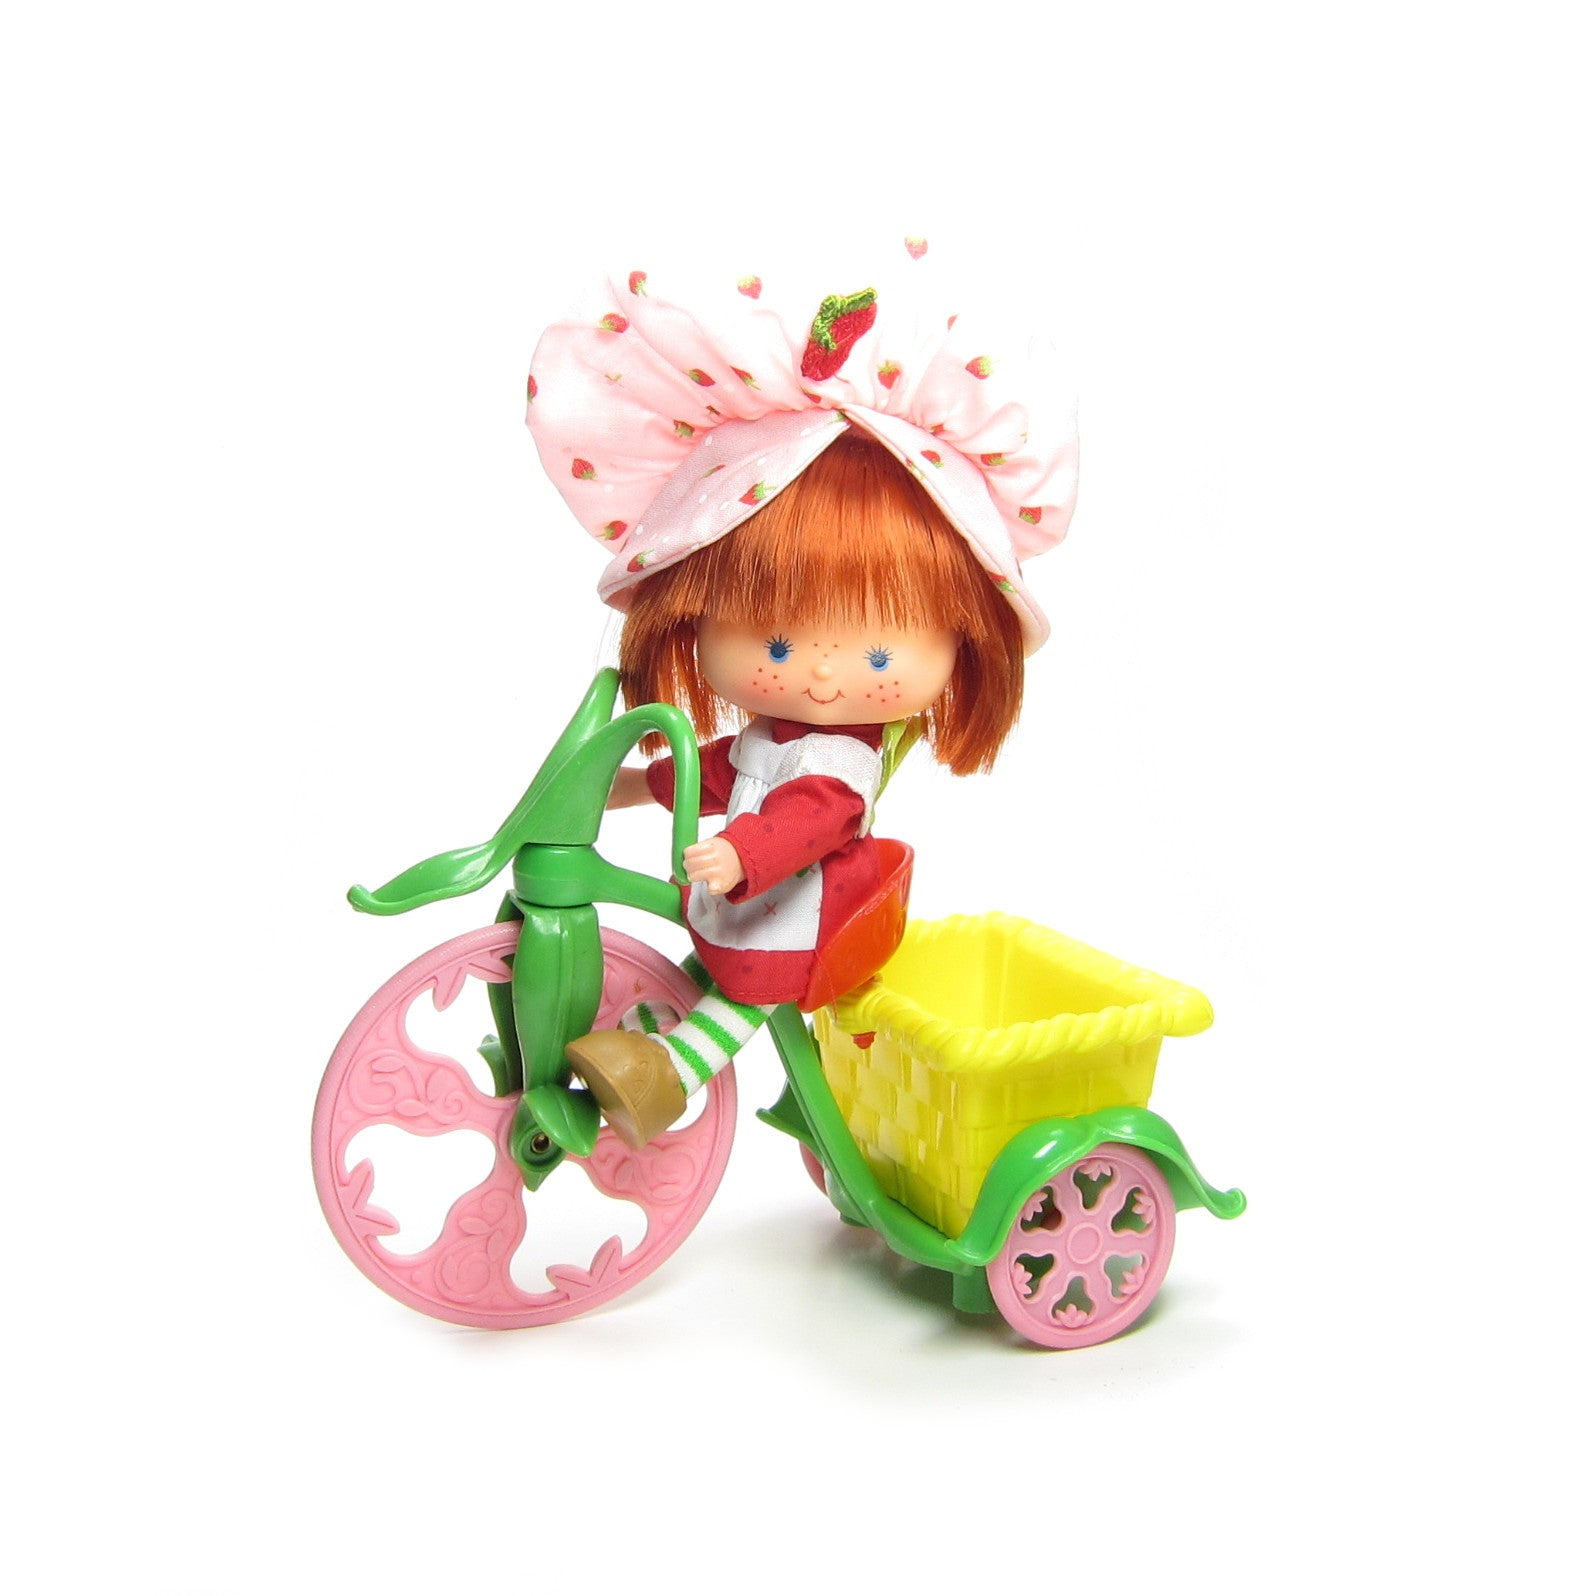 Strawberry Shortcake tricycle toy for dolls